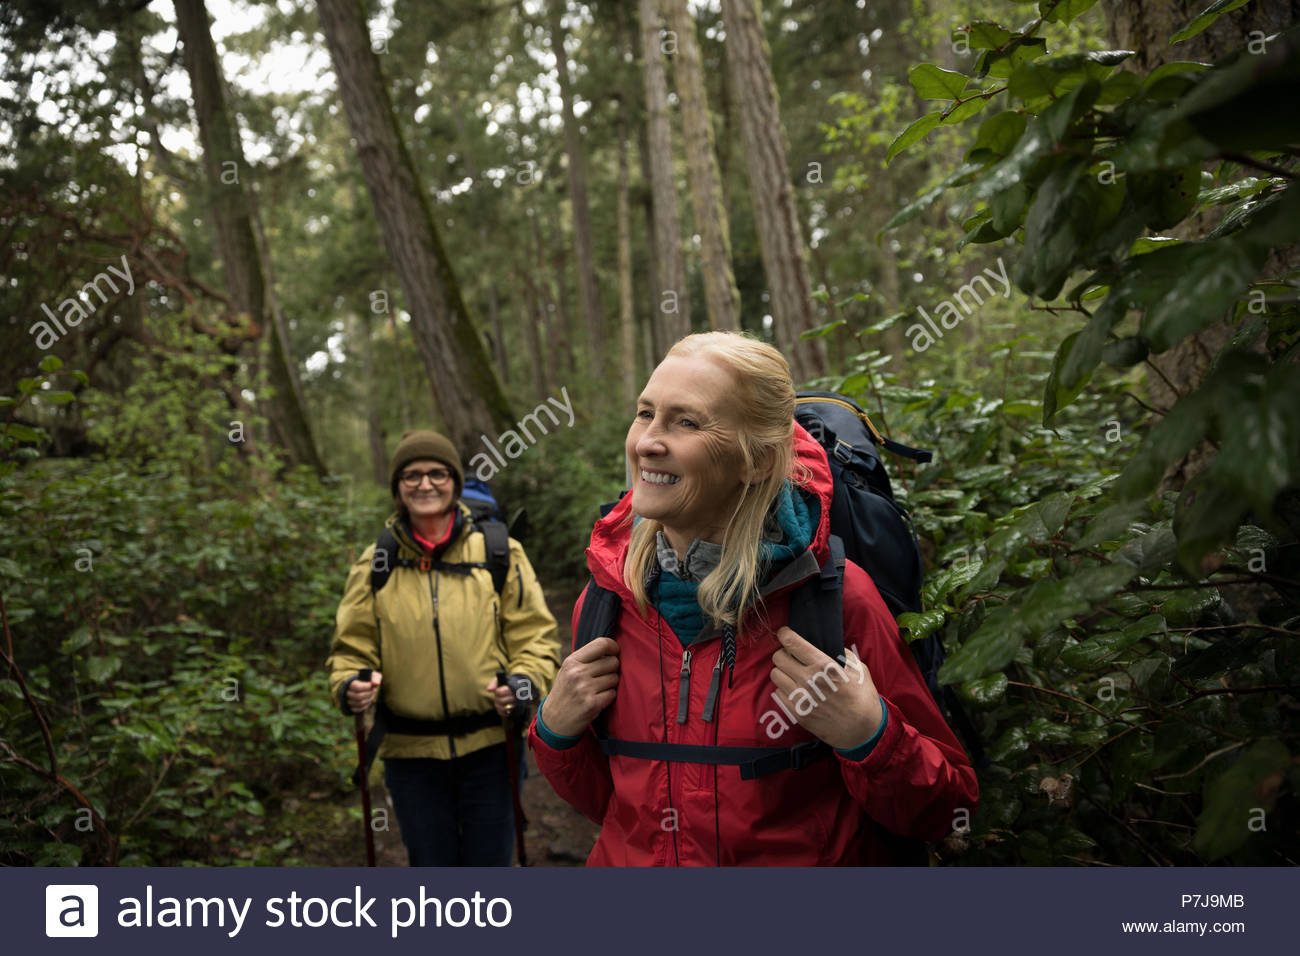 Smiling, carefree active senior women hikers hiking in woods - Stock Image